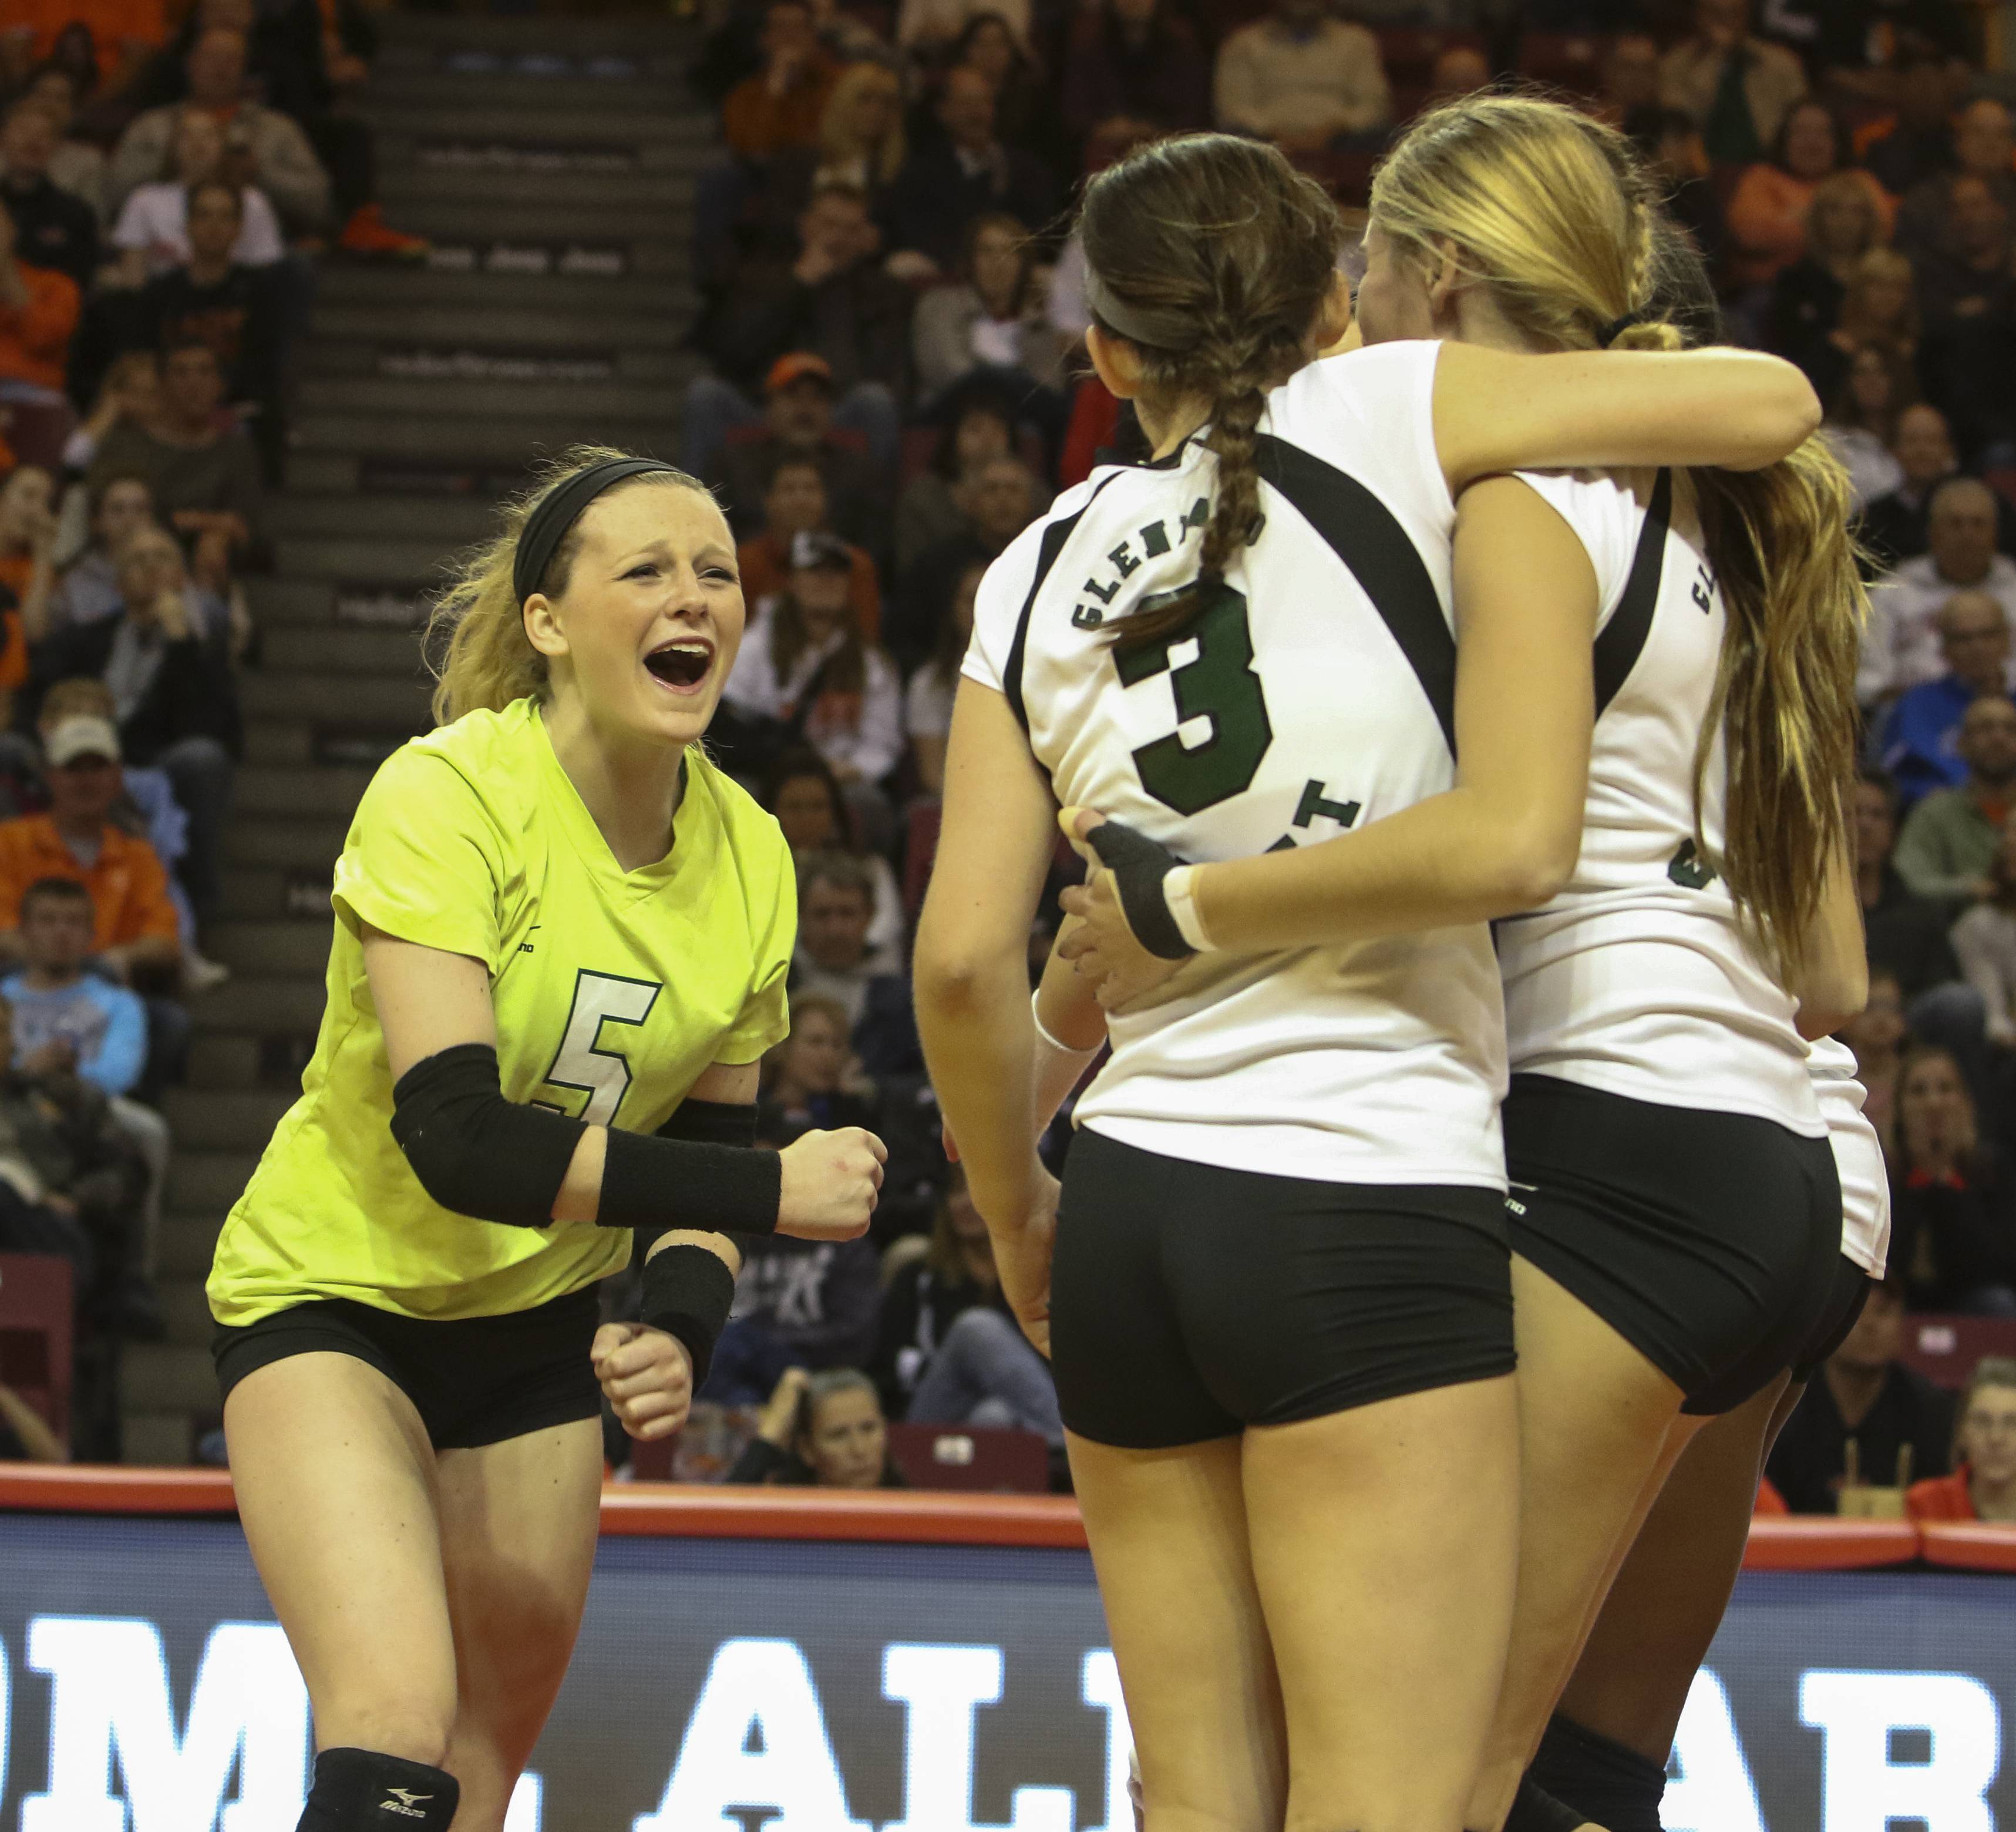 Claire Wagner of Glenbard West, left, celebrates during their win over Normal during a Class 4A girls volleyball semifinal on Friday in Normal.